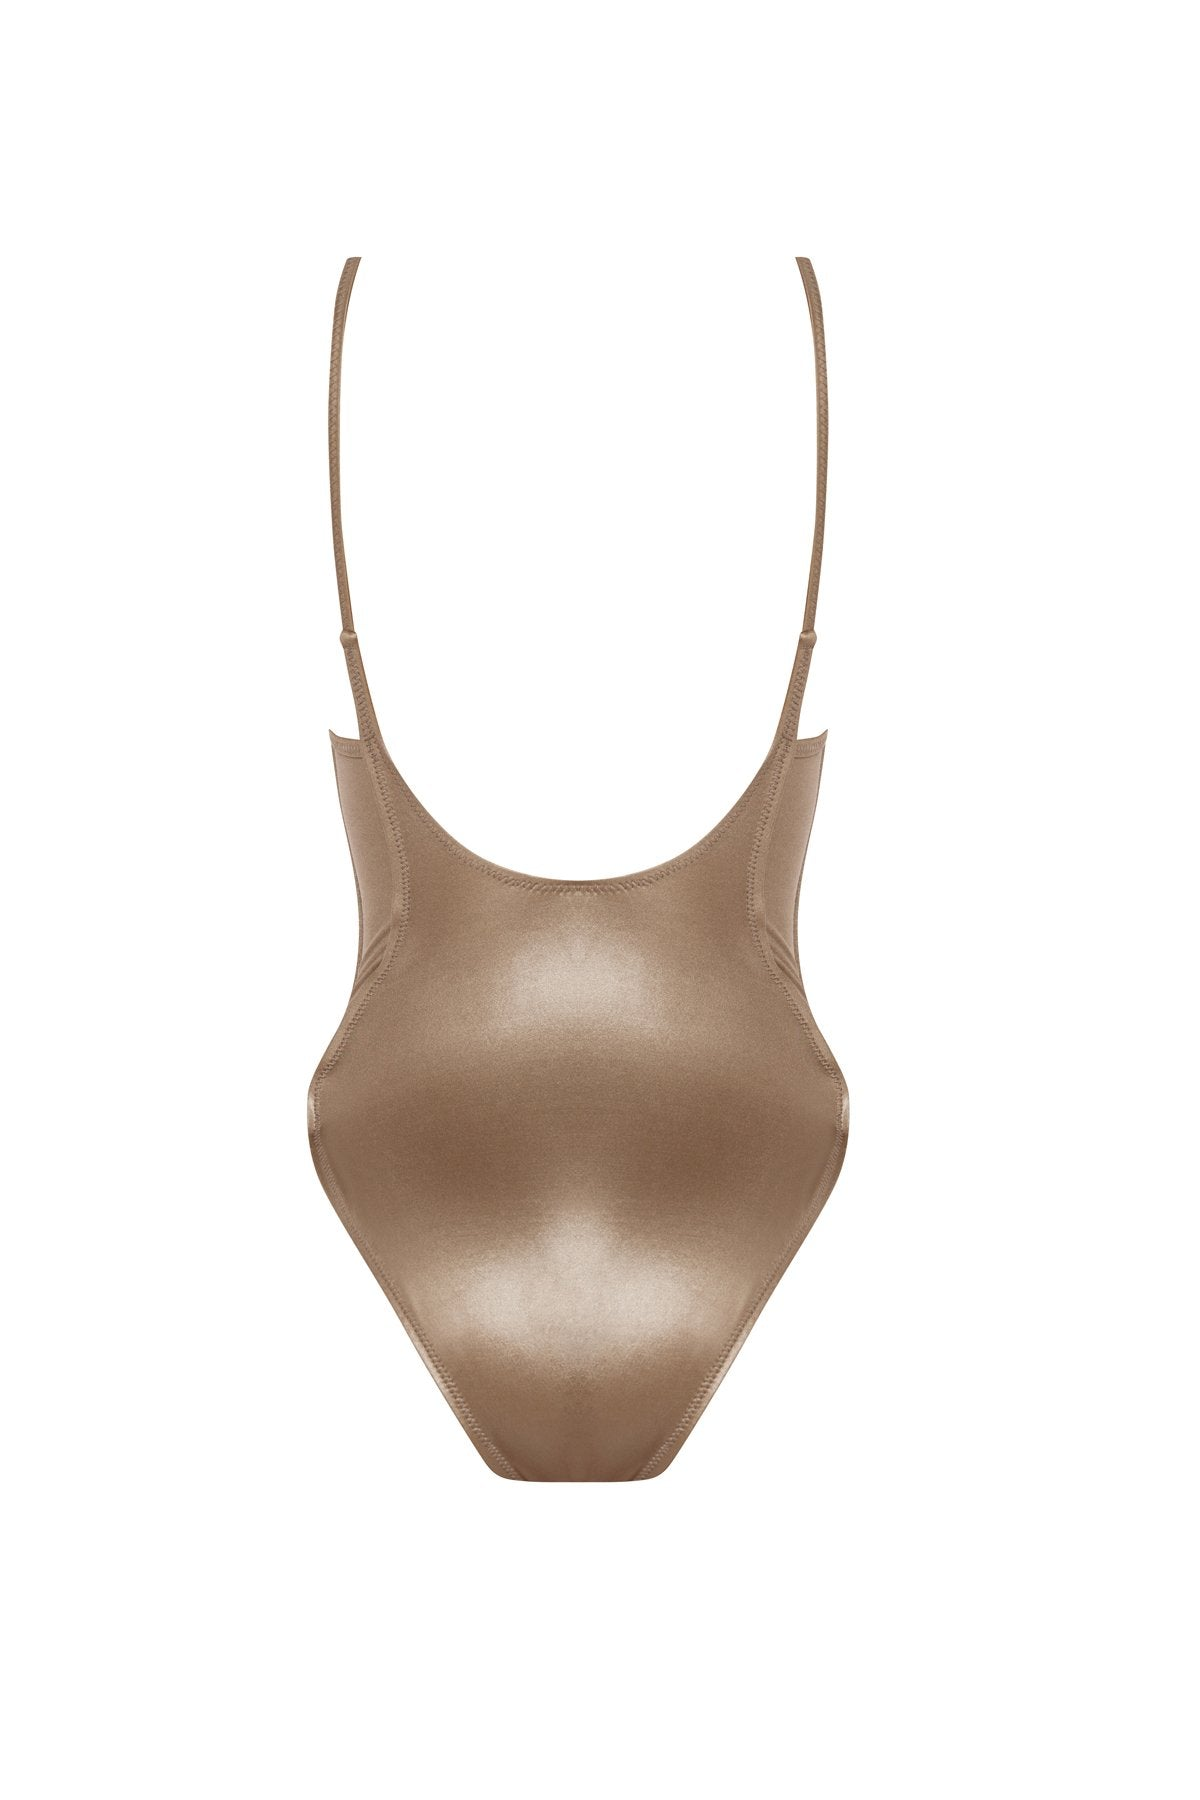 BIANCA One-Piece in Gold Pearl